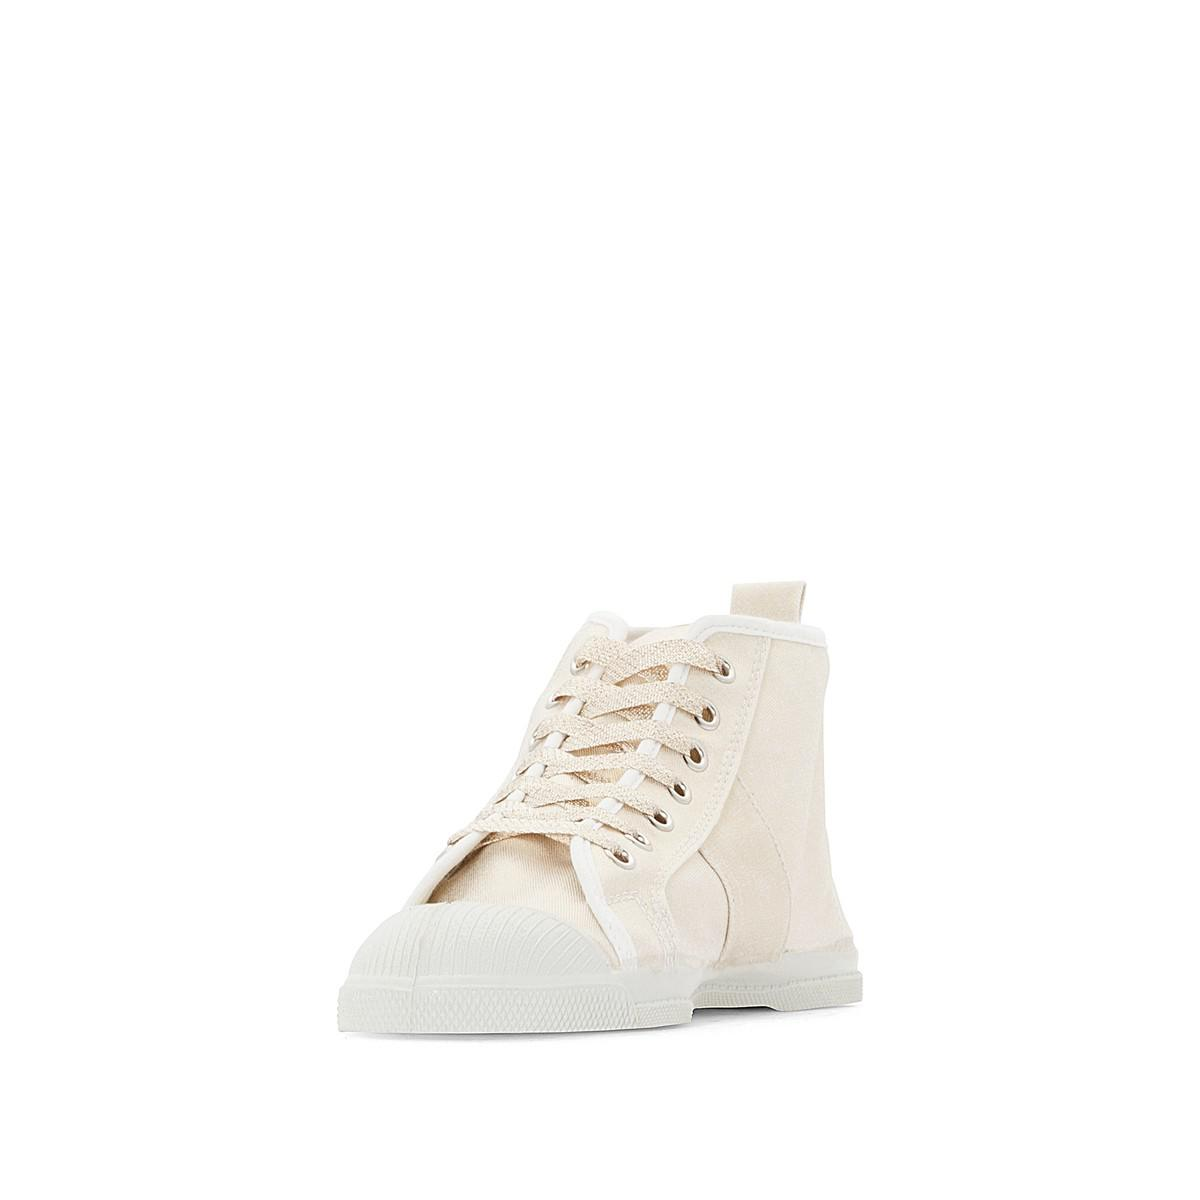 8d8ebb8e738fe3 Lyst - Bensimon Stella Shiny Cotton Canvas High Top Trainers